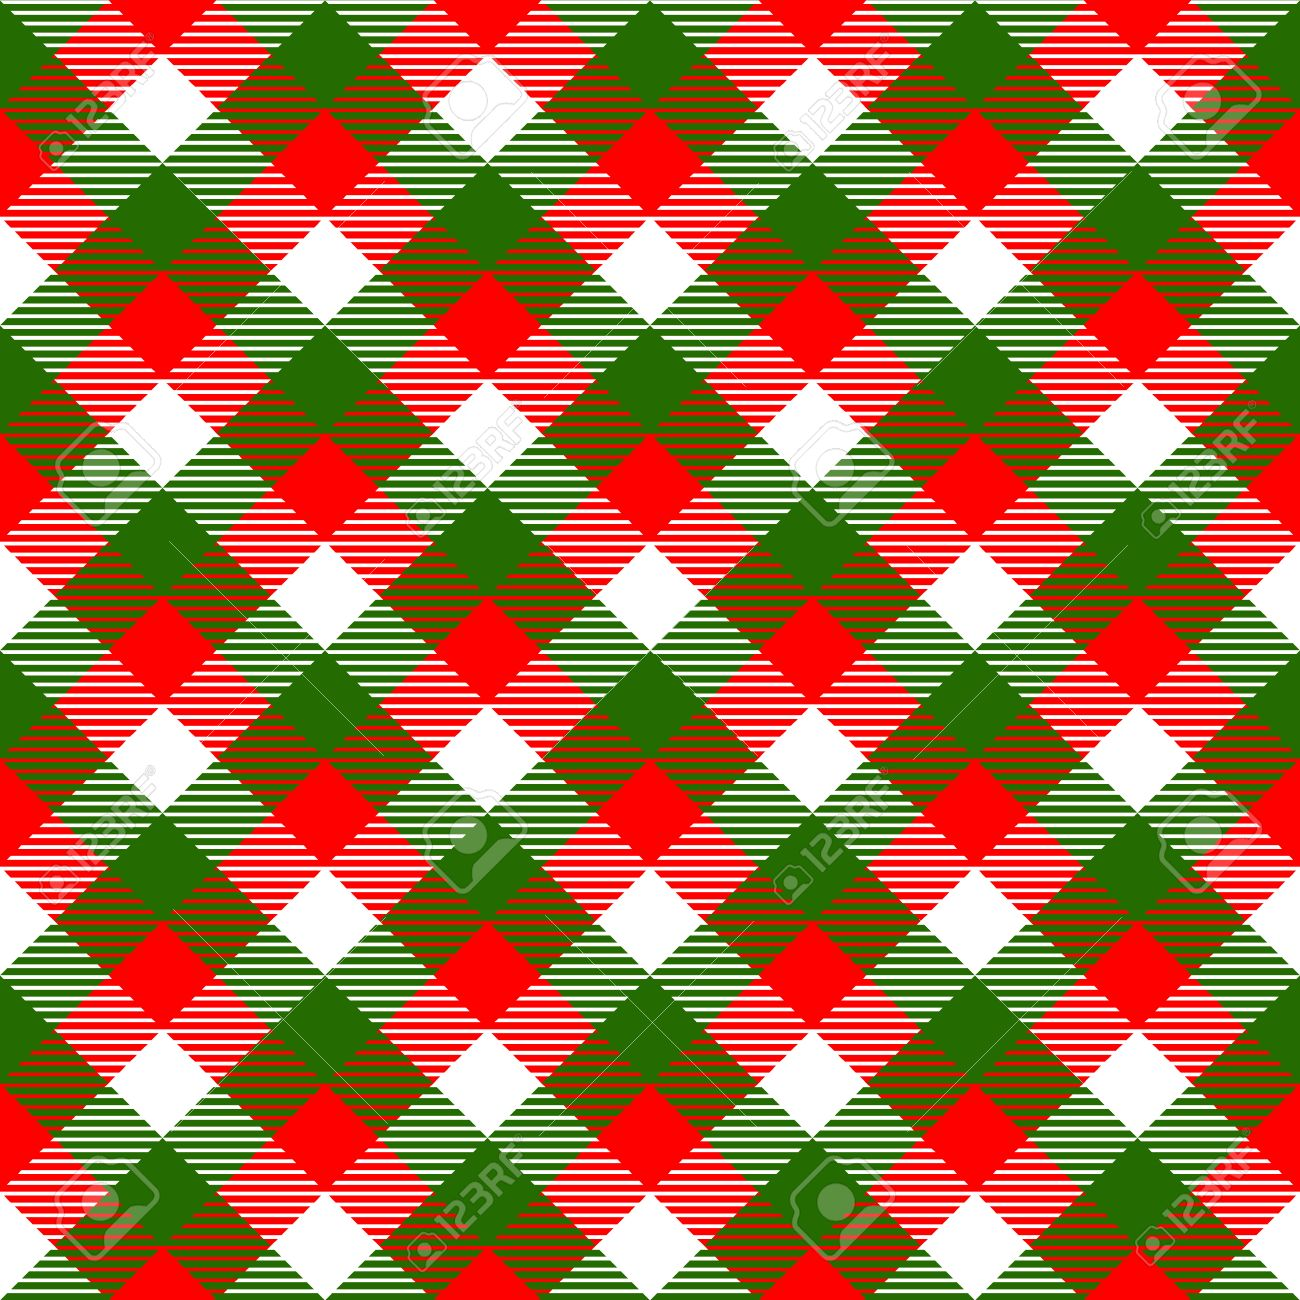 Christmas Colors.Checkered Gingham Fabric Seamless Pattern In Christmas Colors